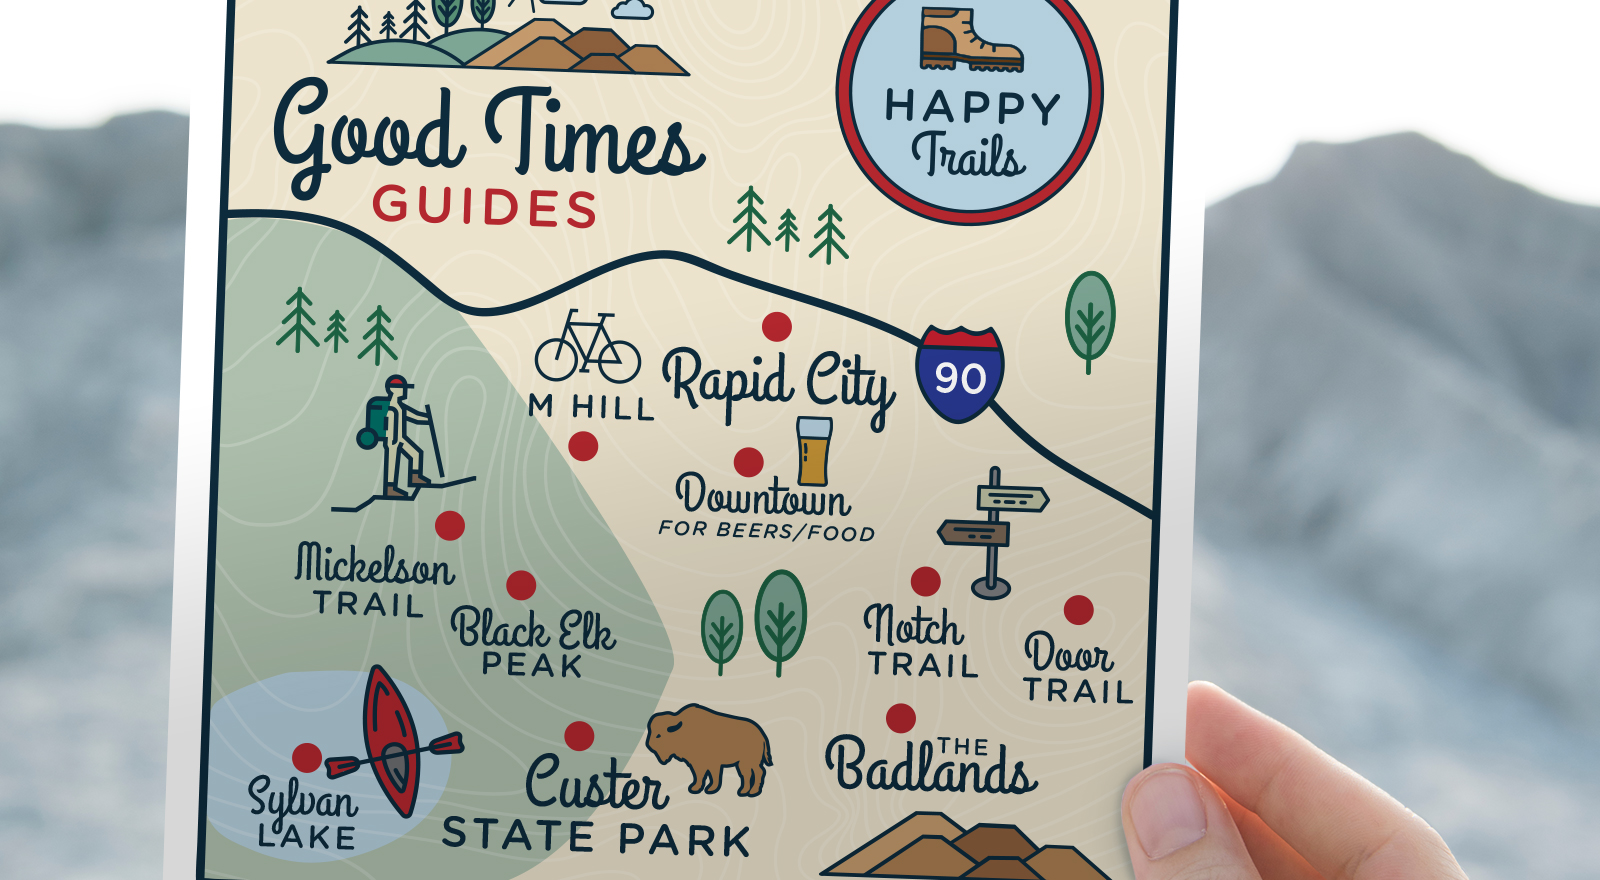 Good Times Guide